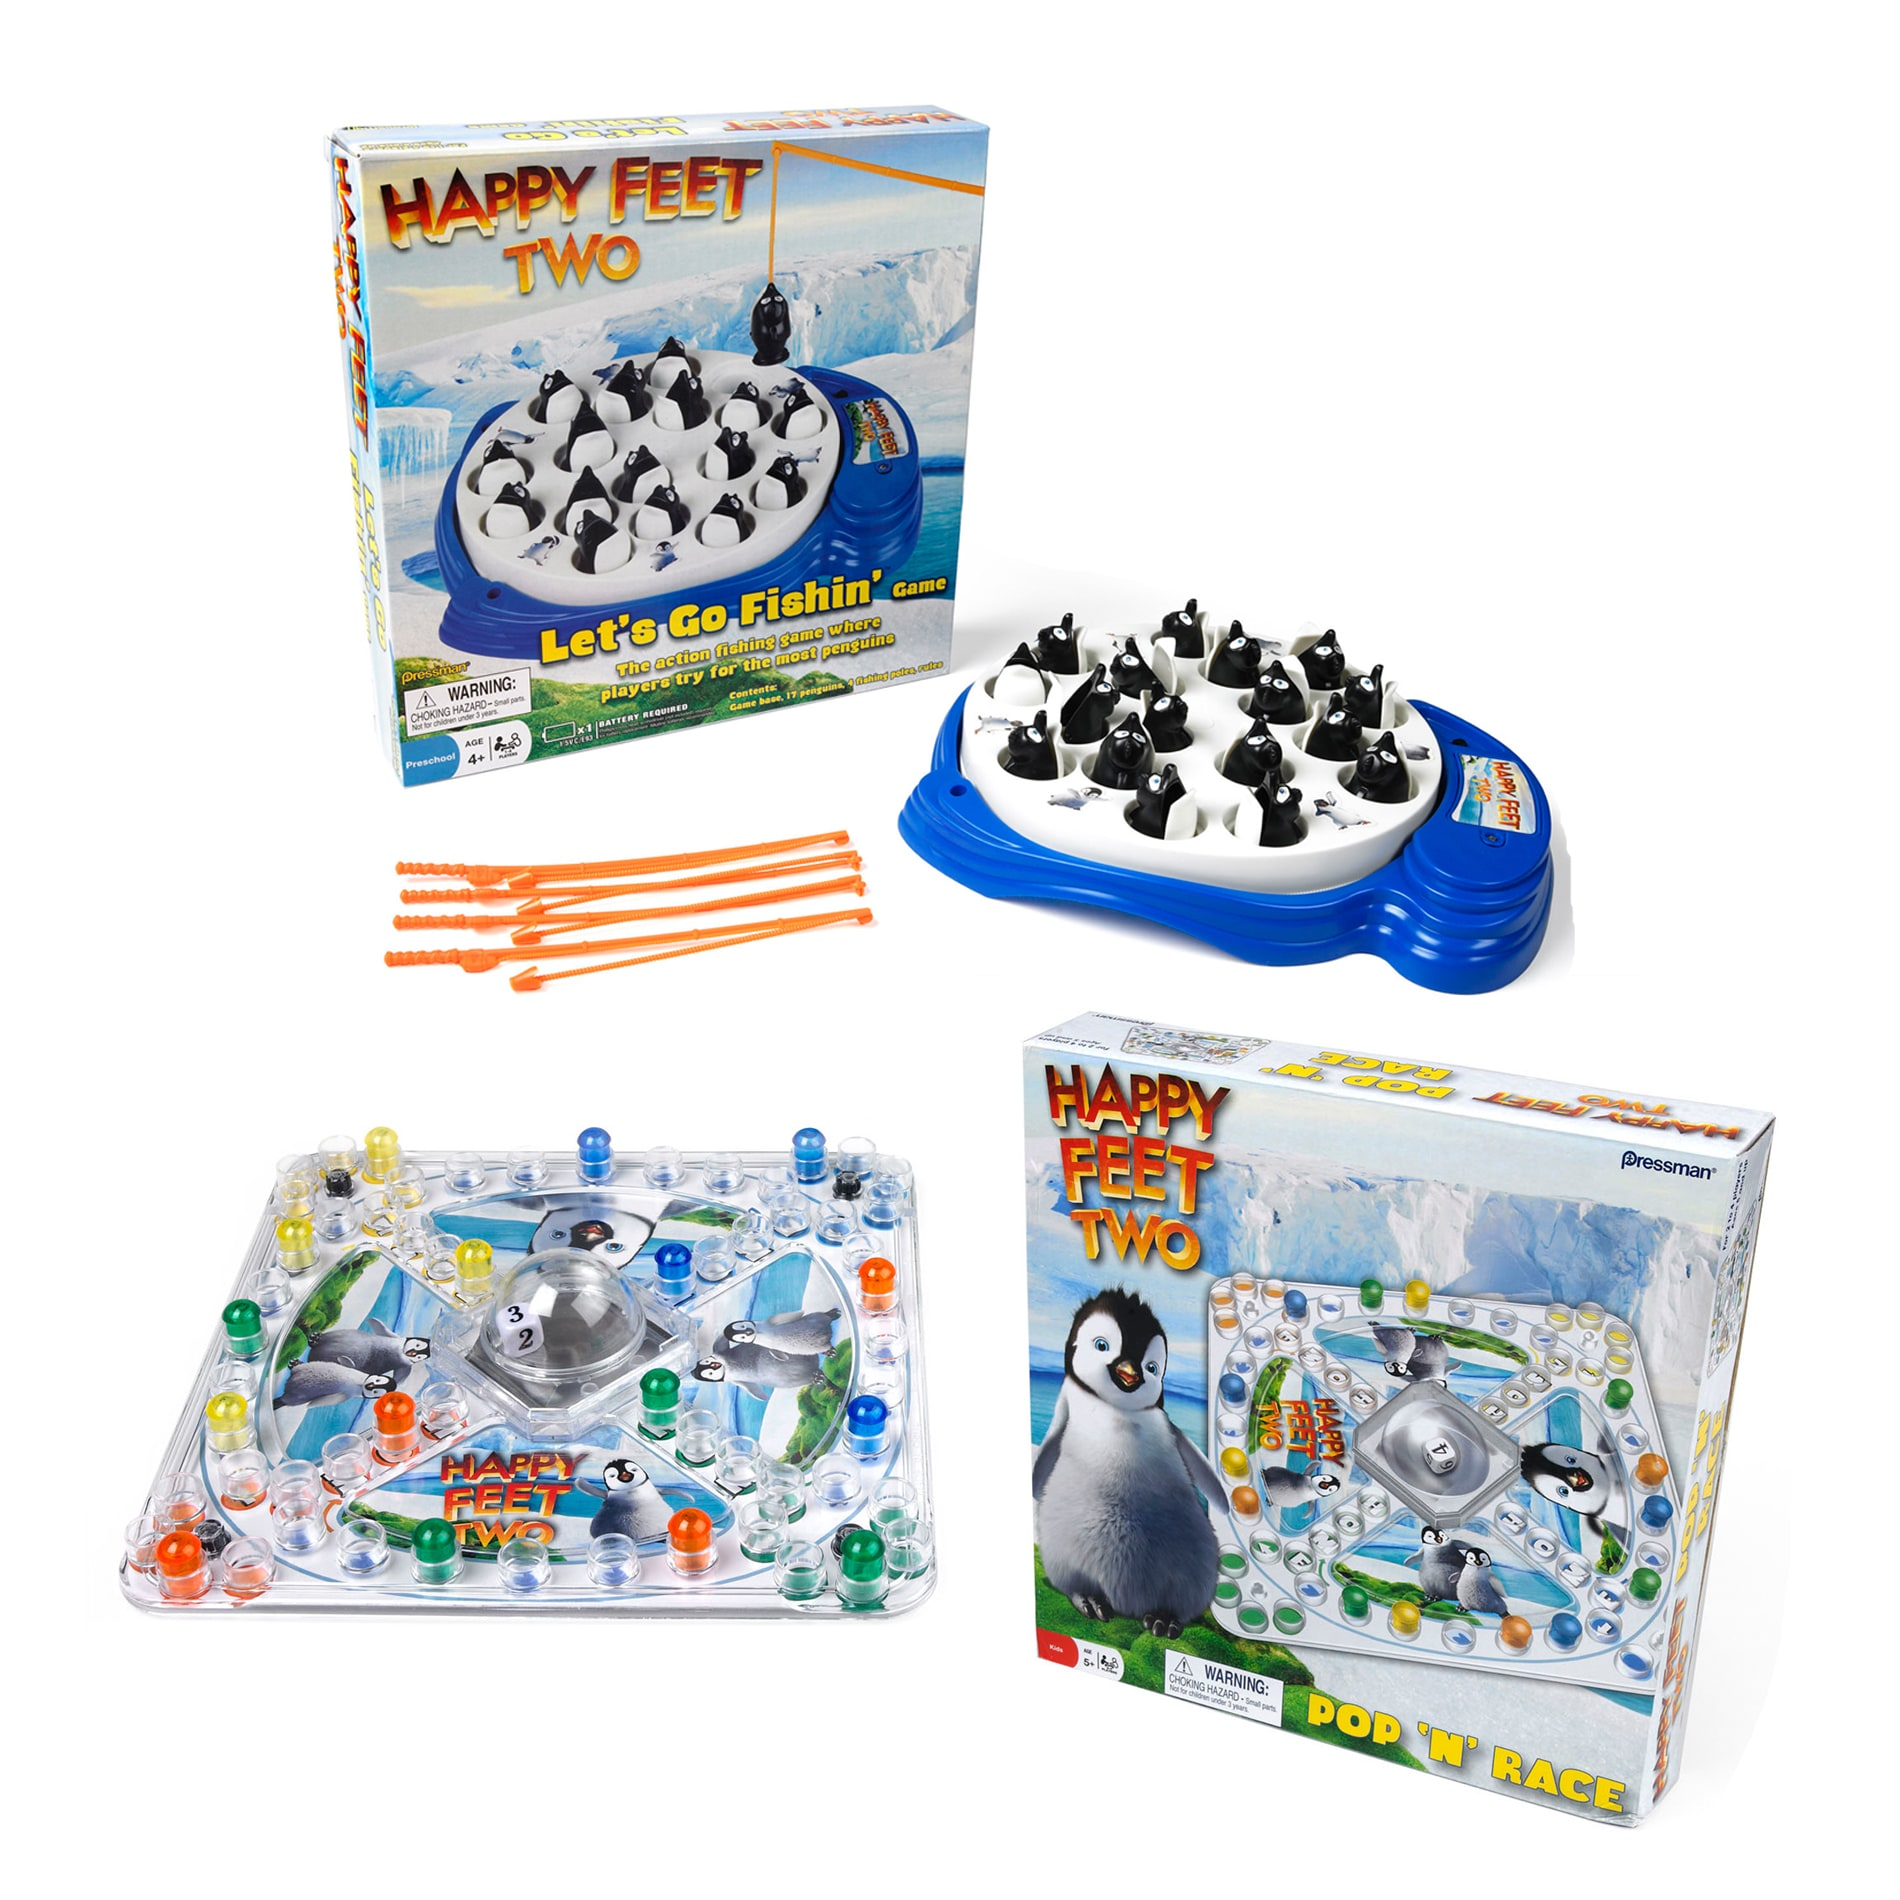 Pressman Games Happy Feet Two Fish and Pop n Race Game Set